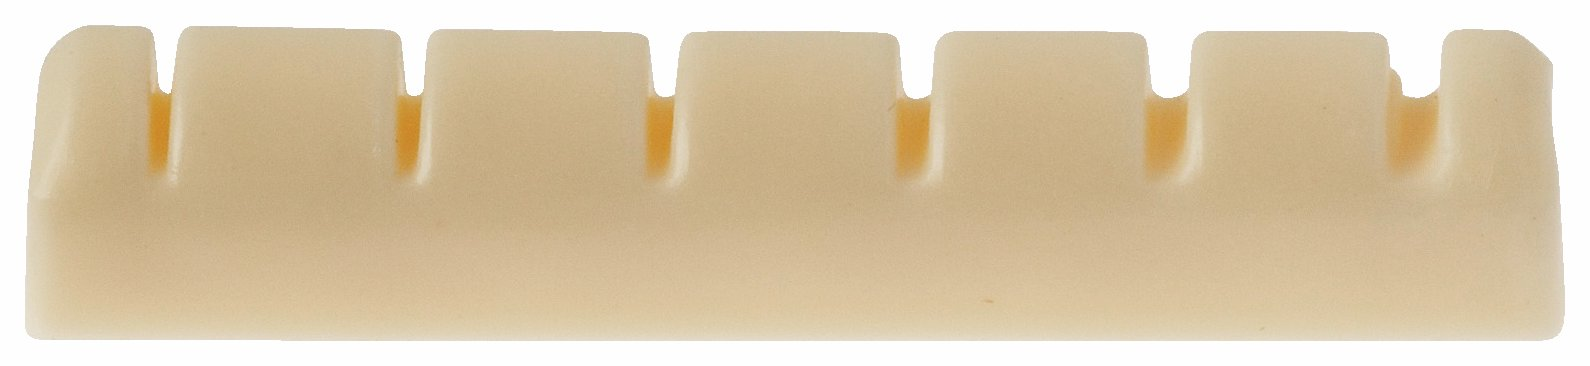 Framus Vintage Parts - Archtop and Thinline Guitar Nut, 6-String